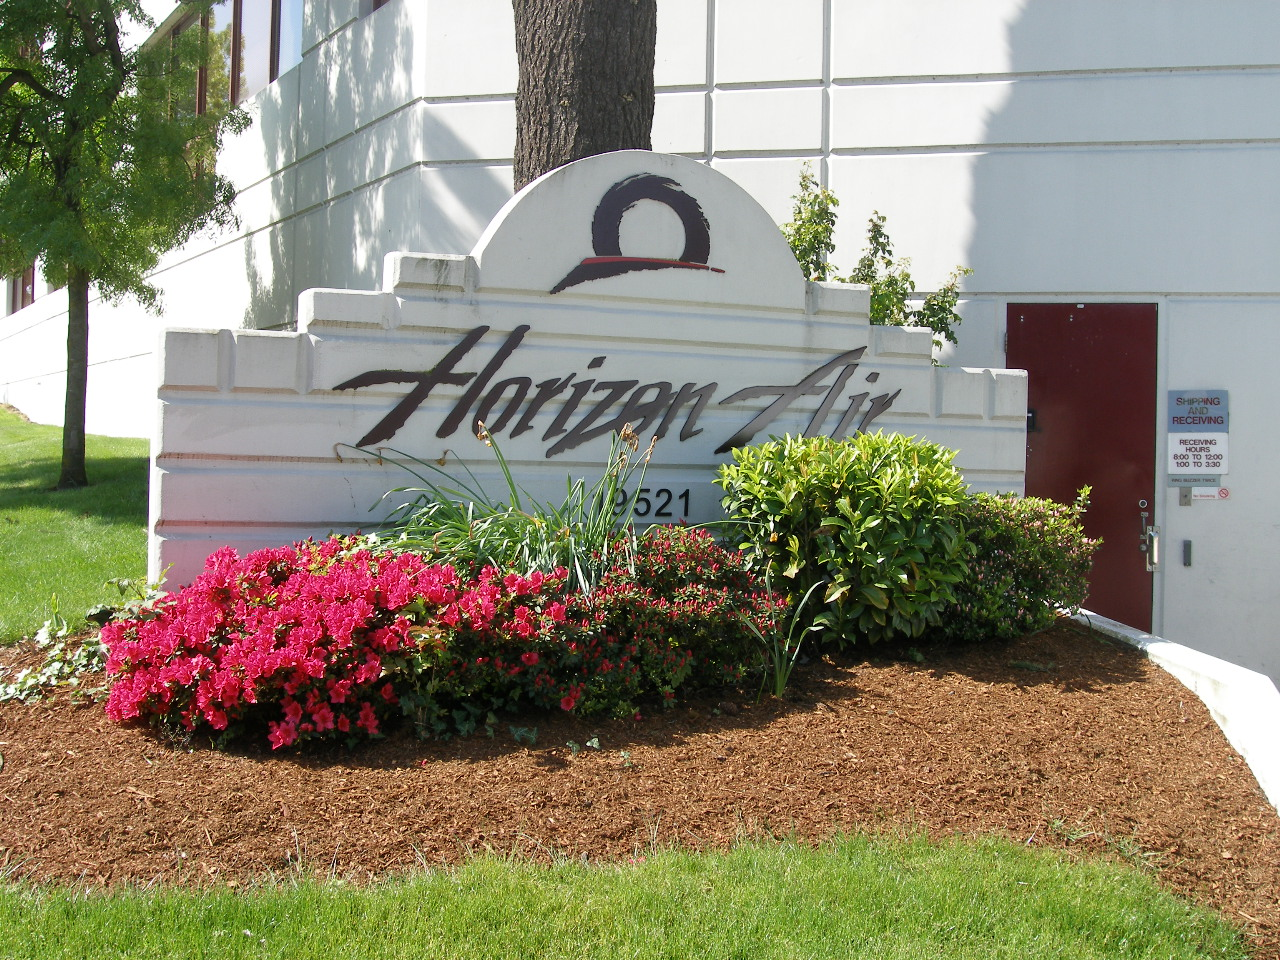 Horizon Air headquarters